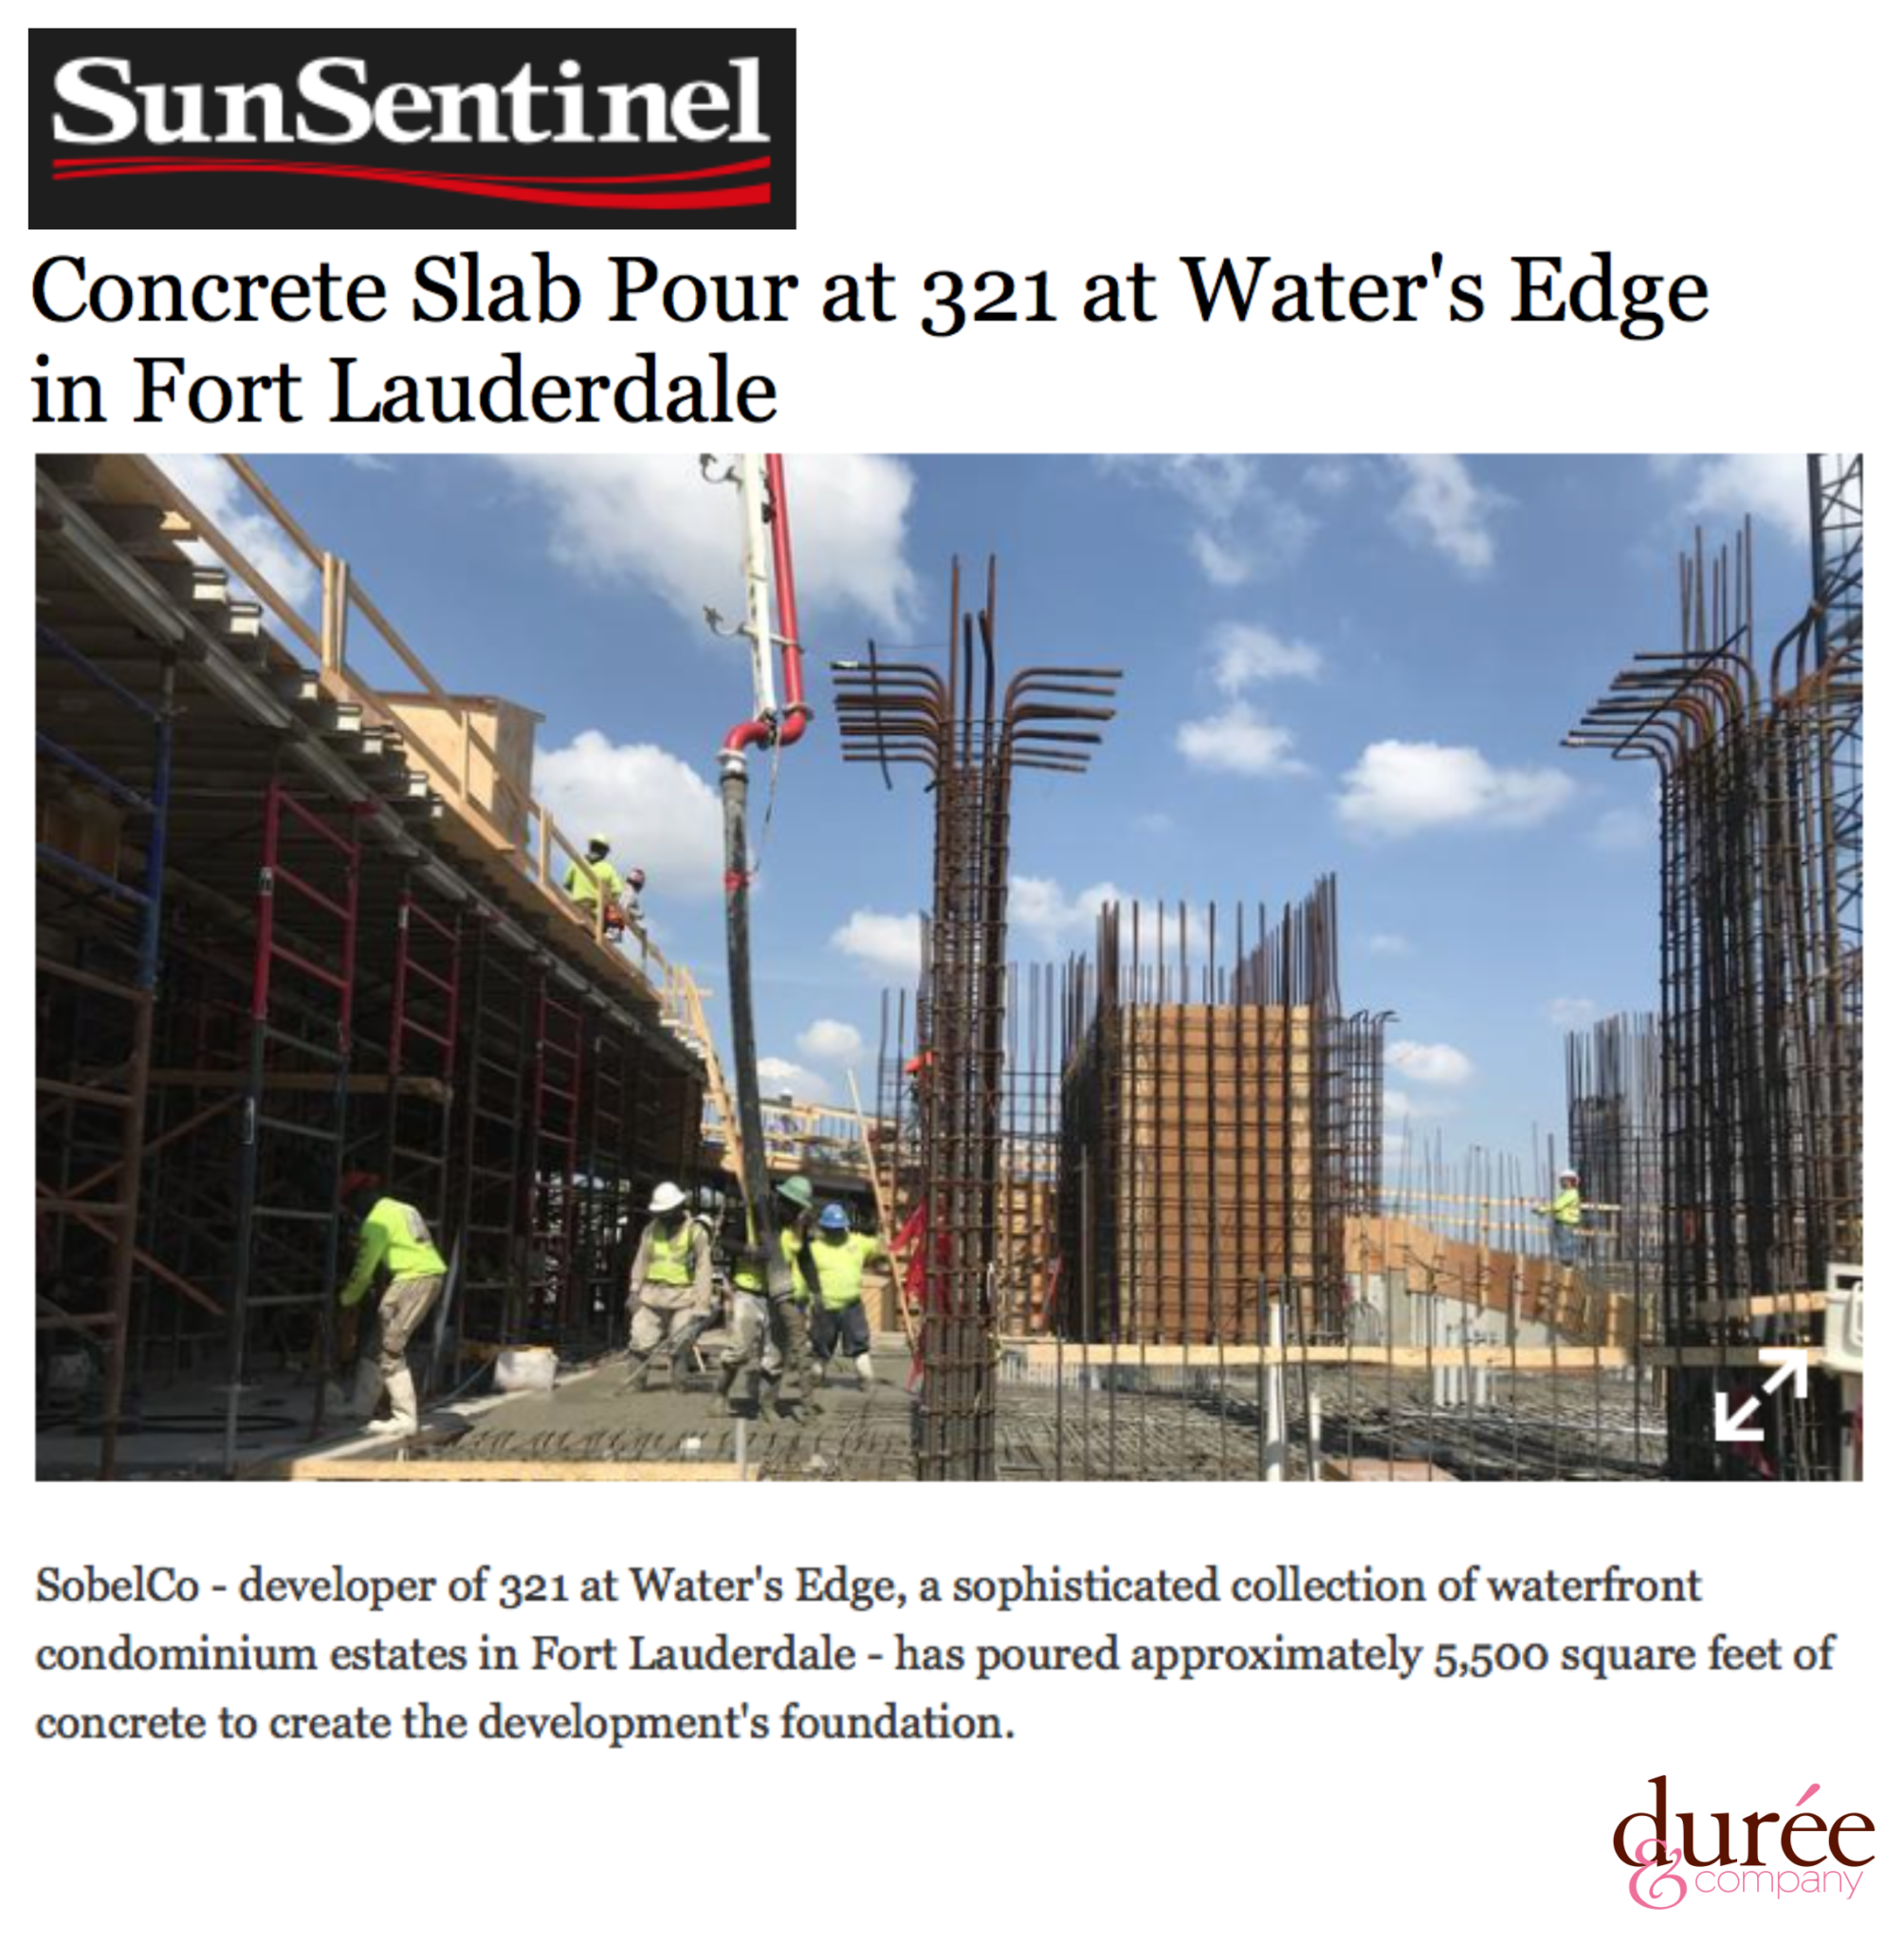 "Construction Photo and article from the Sun Sentinel ""Concrete Slab Pour at 321 at Water's Edge in Fort Lauderdale"" SobelCo"